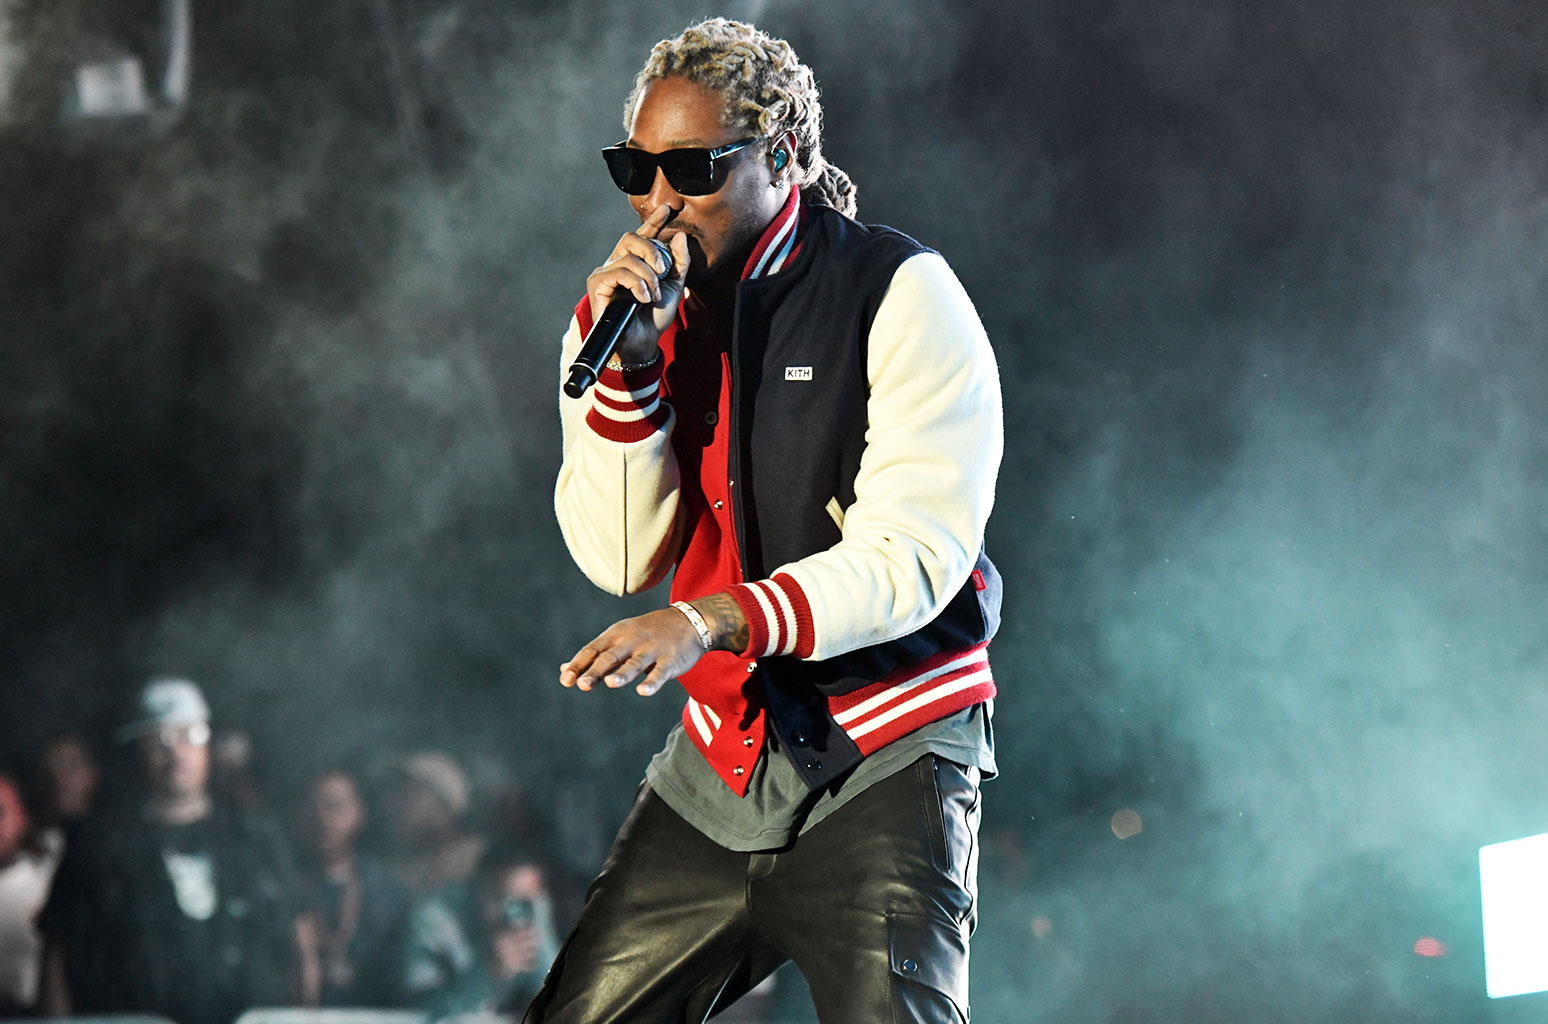 Future's 'High Off Life' on Course for No. 1 on Billboard 200 Albums Chart